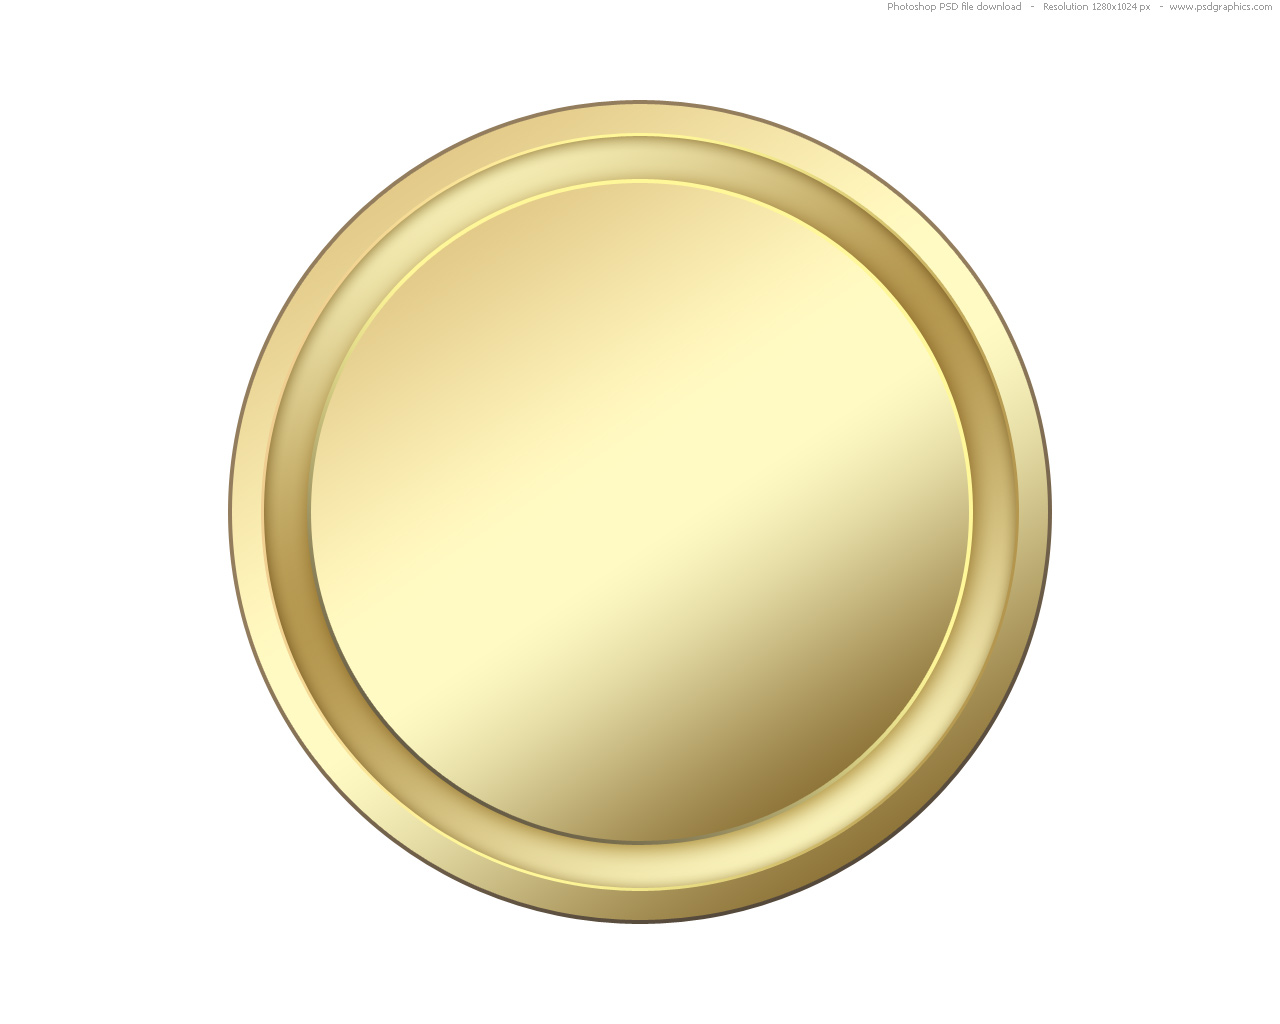 Gold Blank Icon Buttons - Blank Coin PNG